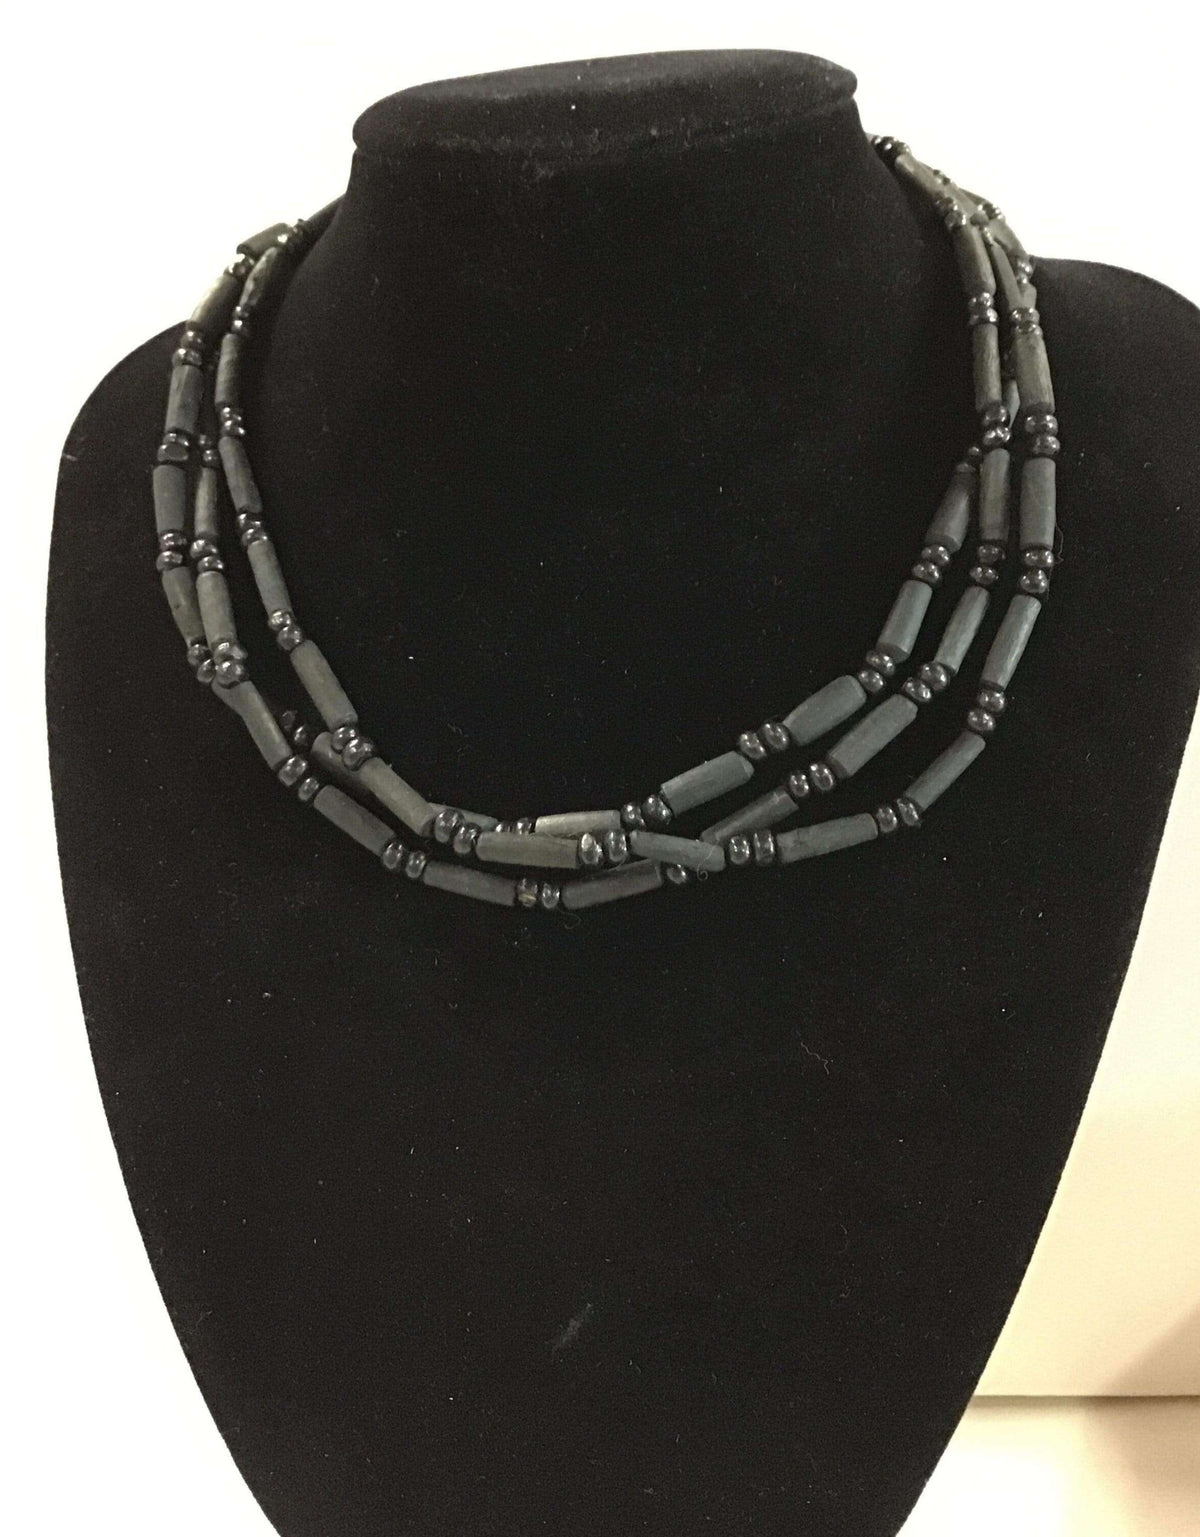 Black Tulasi Neckbeads - Three Rounds